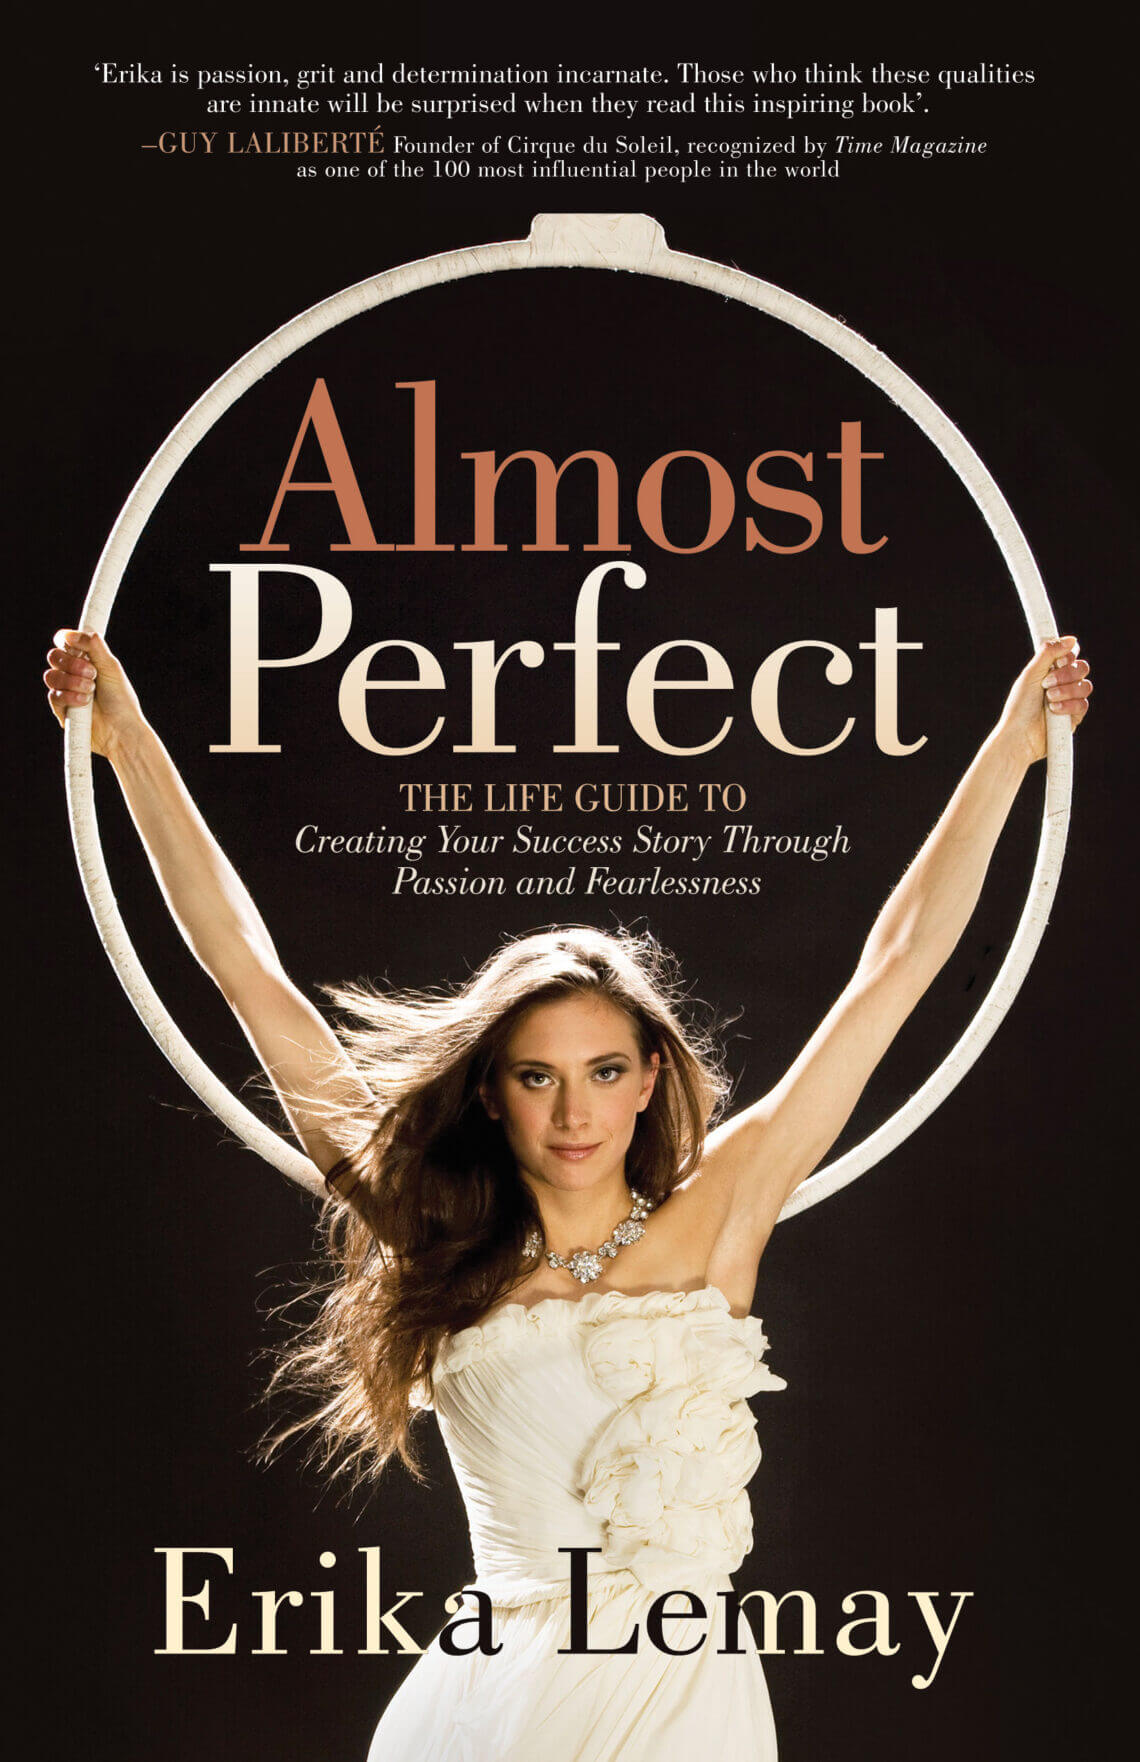 erika lemay CoverAlmostperfectfinalversionRGB Almost Perfect: The Life Guide to Creating Your Success Story Through Passion and Fearlessness - EAT LOVE SAVOR International Luxury Lifestyle Magazine